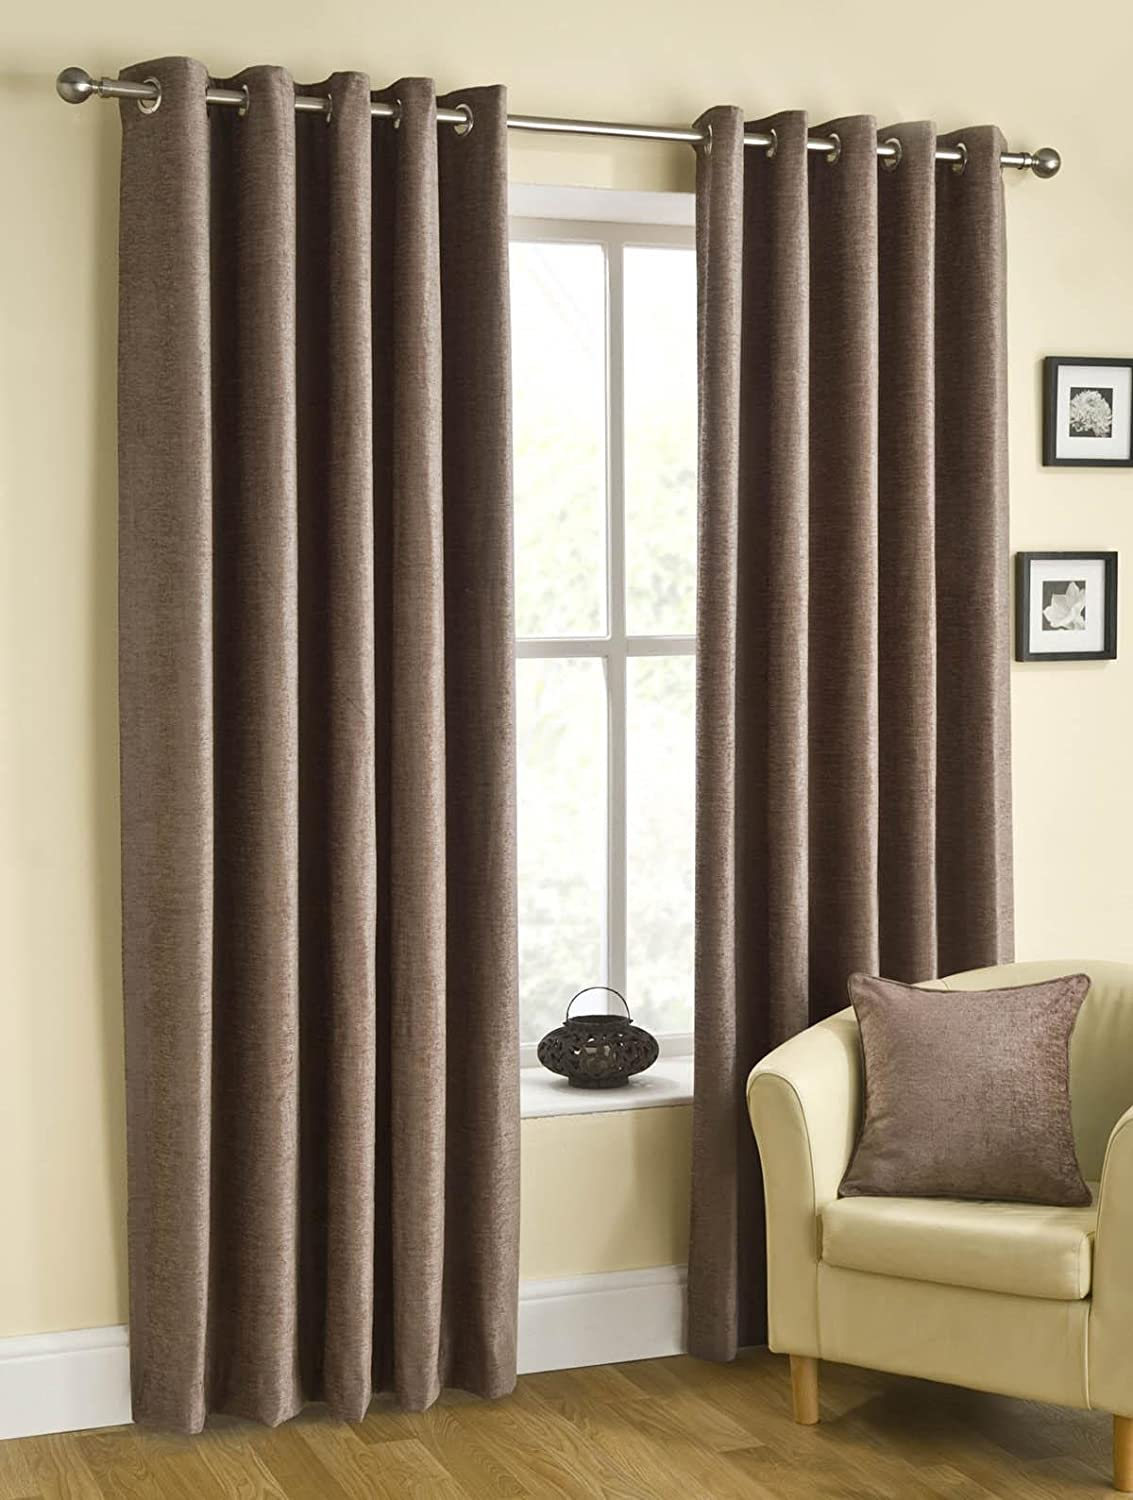 Chenille Plain Curtains Eyelets Lined Curtains /& Matching Cushion Covers